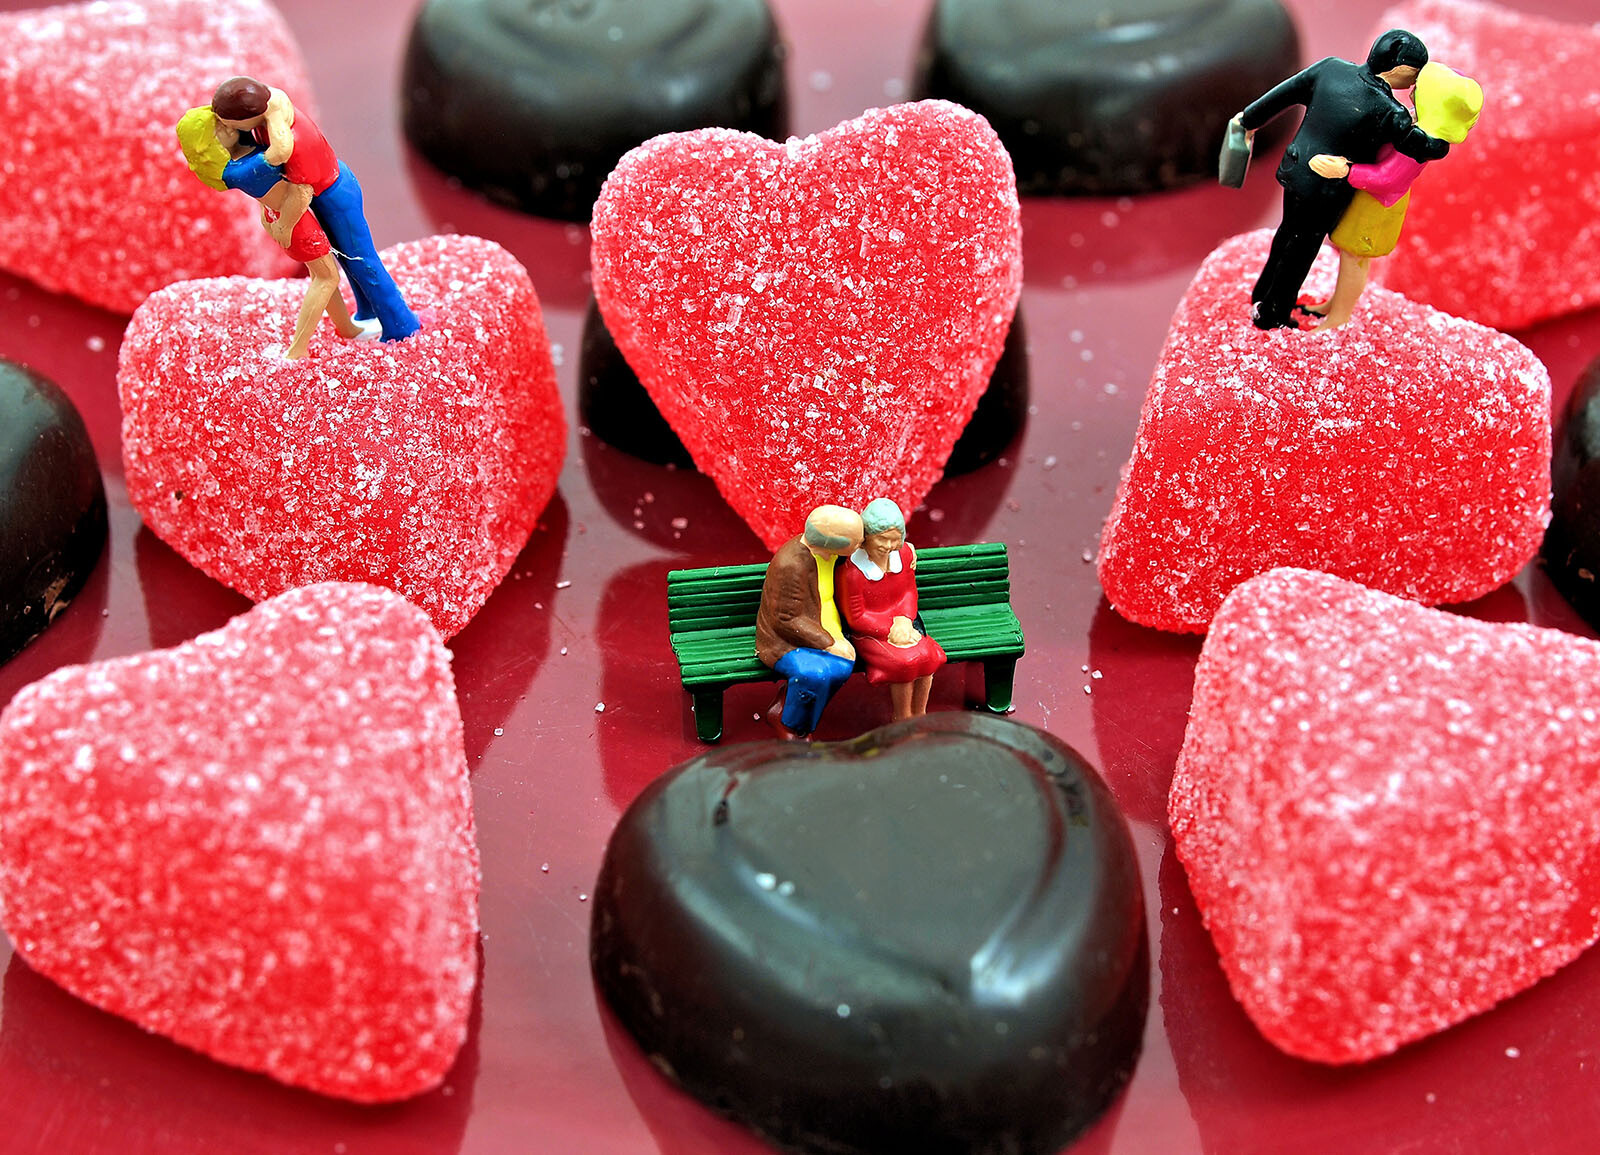 Sweet Love by Cathy Scola